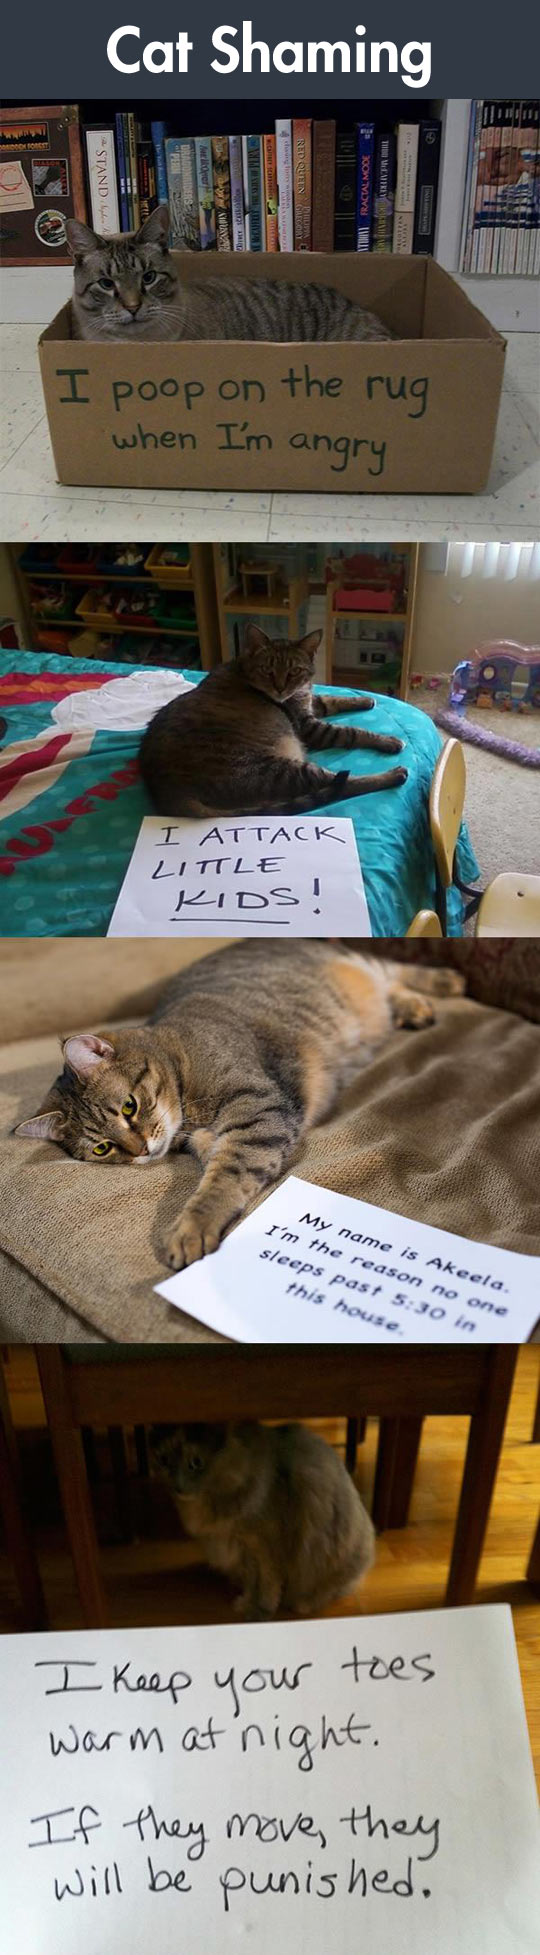 funny-cat-shaming-signs-cute